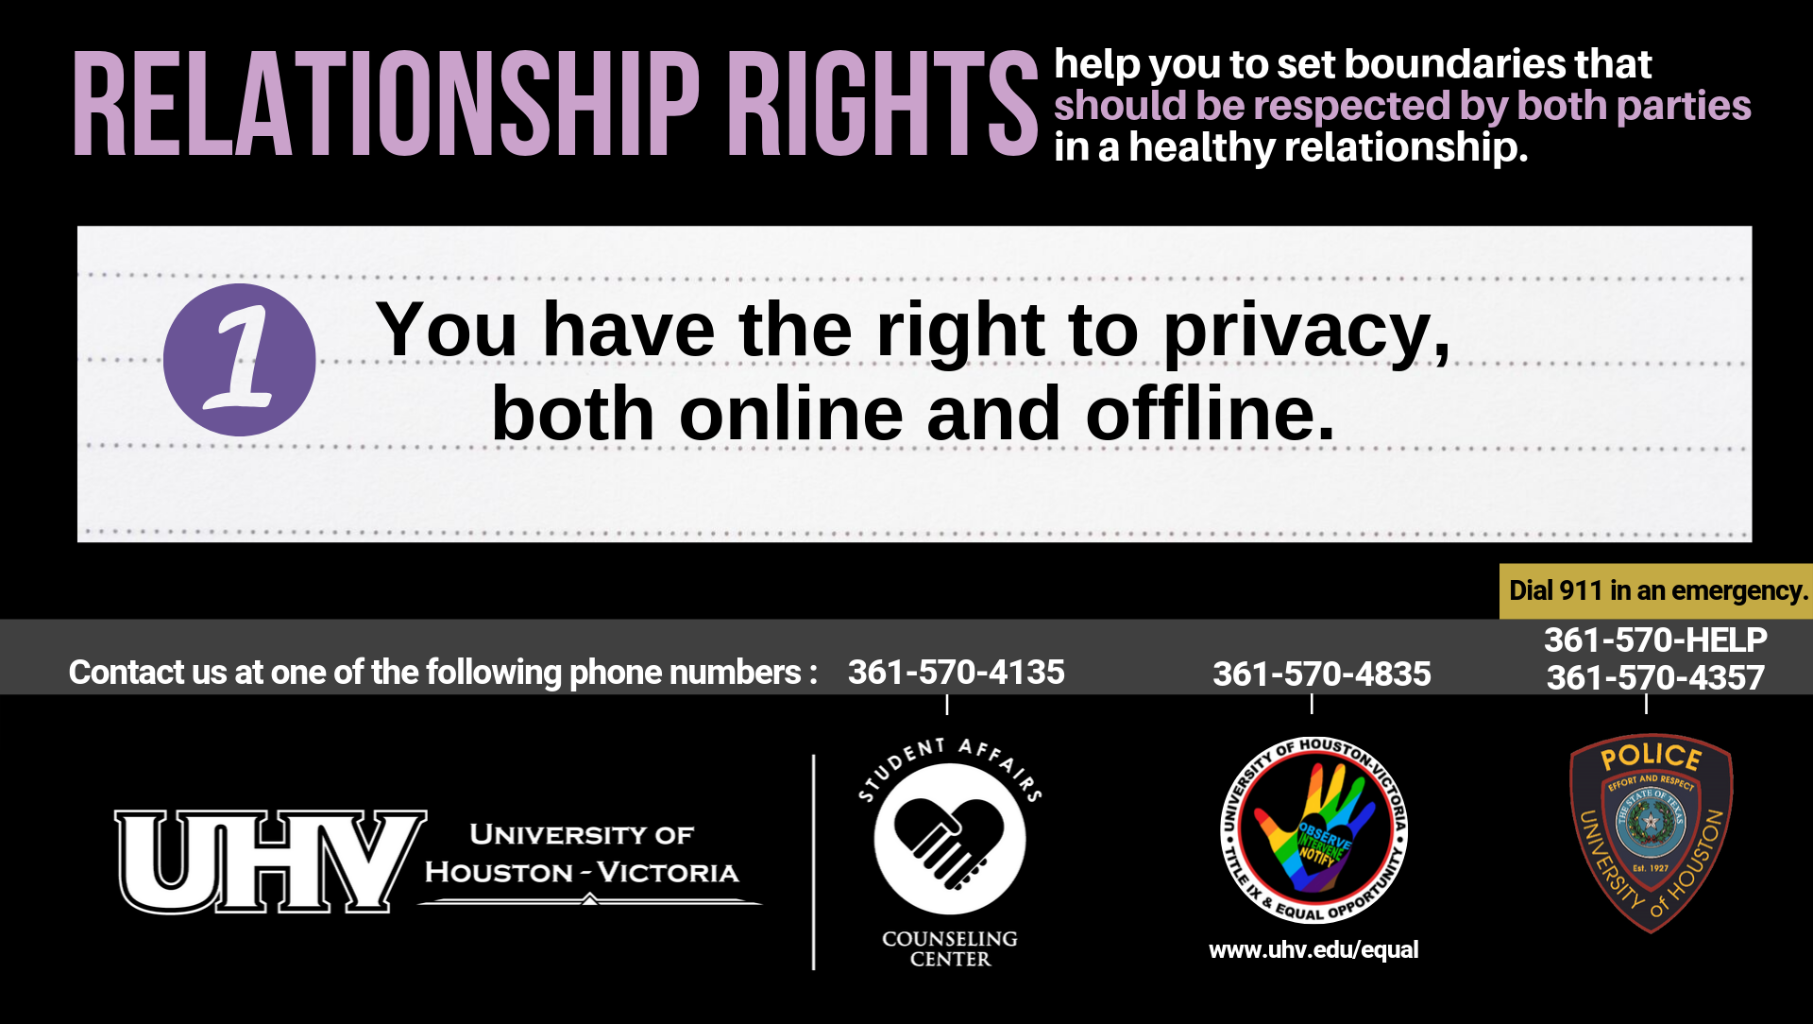 Relationship Rights help you to set boundaries that should be respected by both parties in a healthy relationship. 1. You have the right to privacy, both online and offline. University of Houston-Victoria Title IX and Equal Opportunity Logo (rainbow hand with heart insert with words Observe, Intervene, Notify).